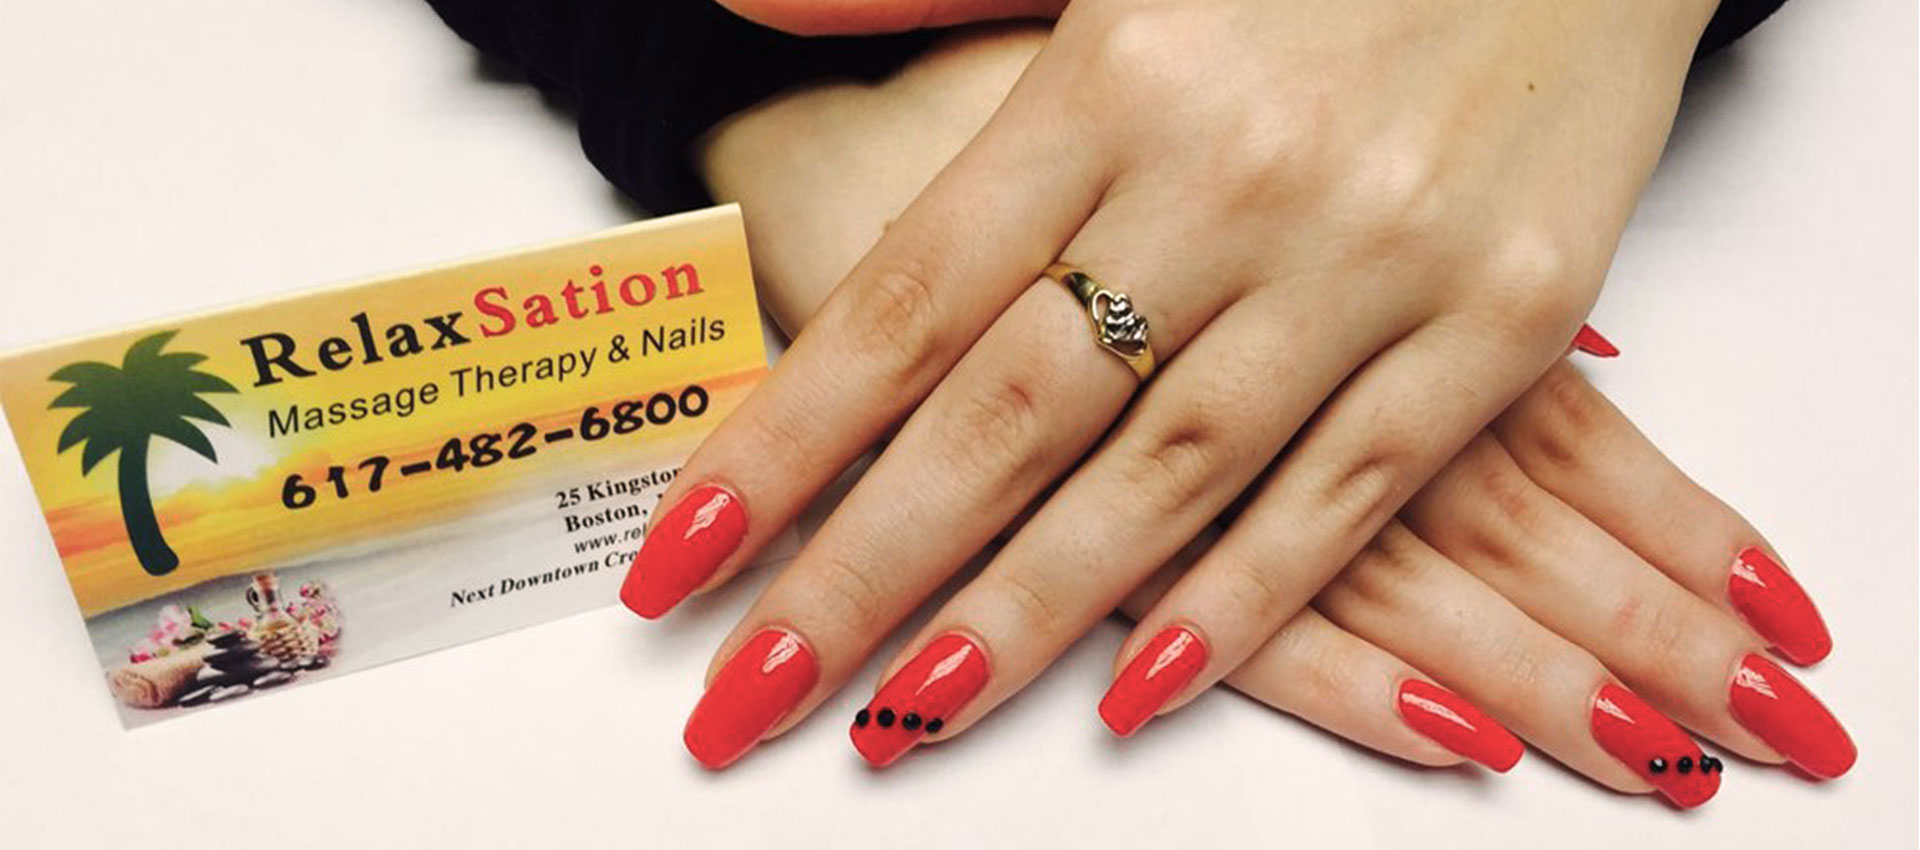 RelaxSation Massage Therapy & Nails: Massage Therapy, Nail Salon and Day Spa in Boston, Quincy and Newton